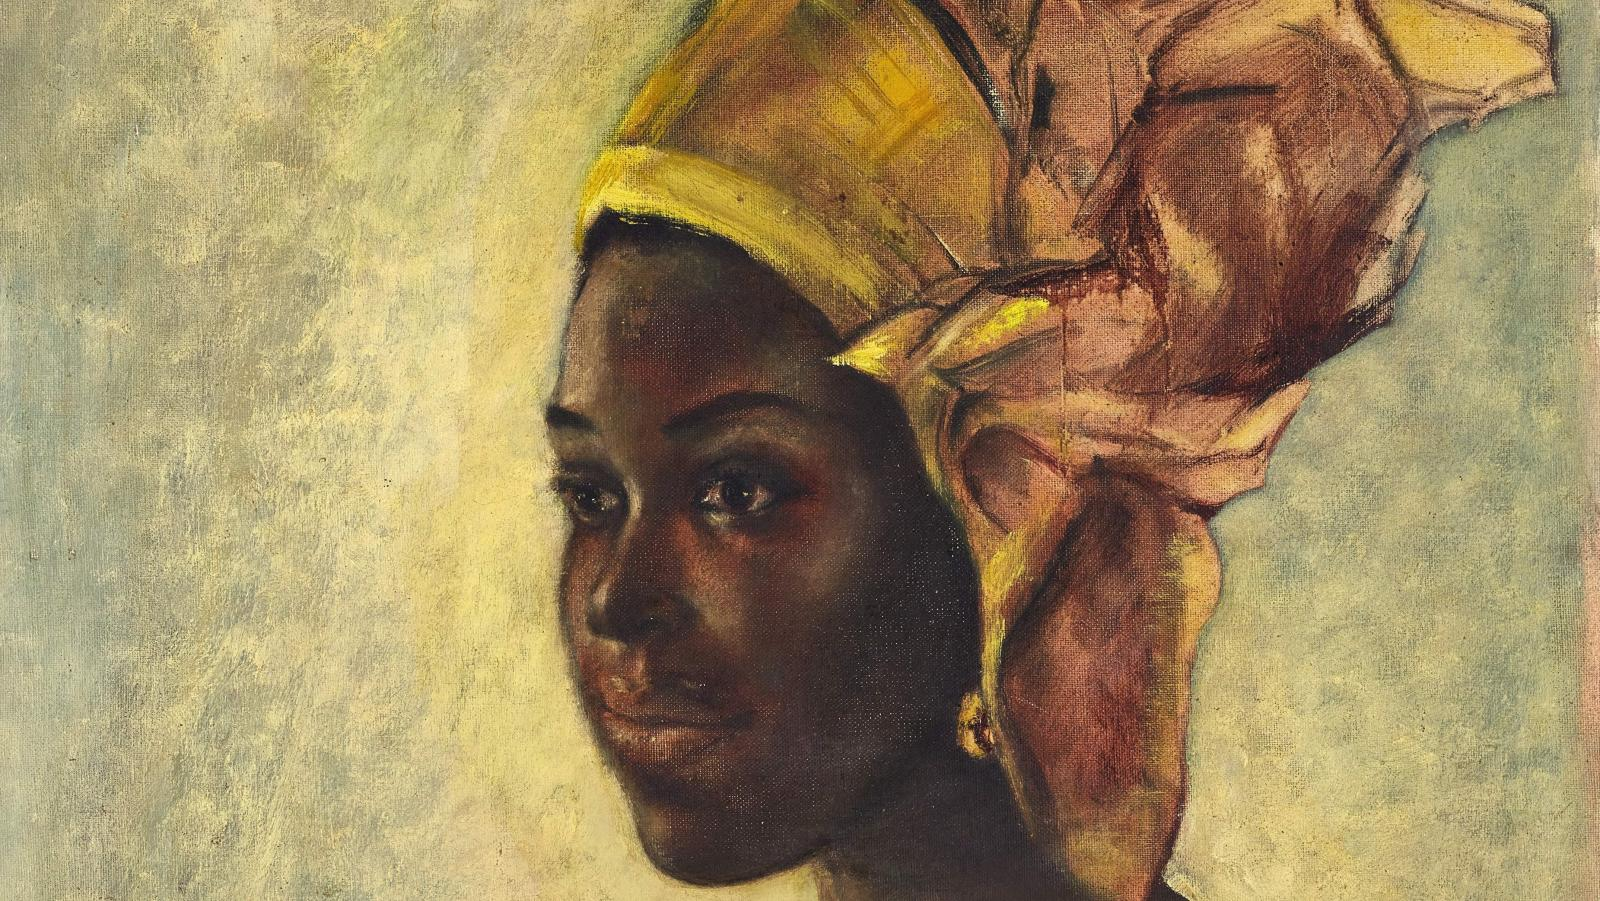 Ben Enwonwu painting sold for $1.4 million at an auction.